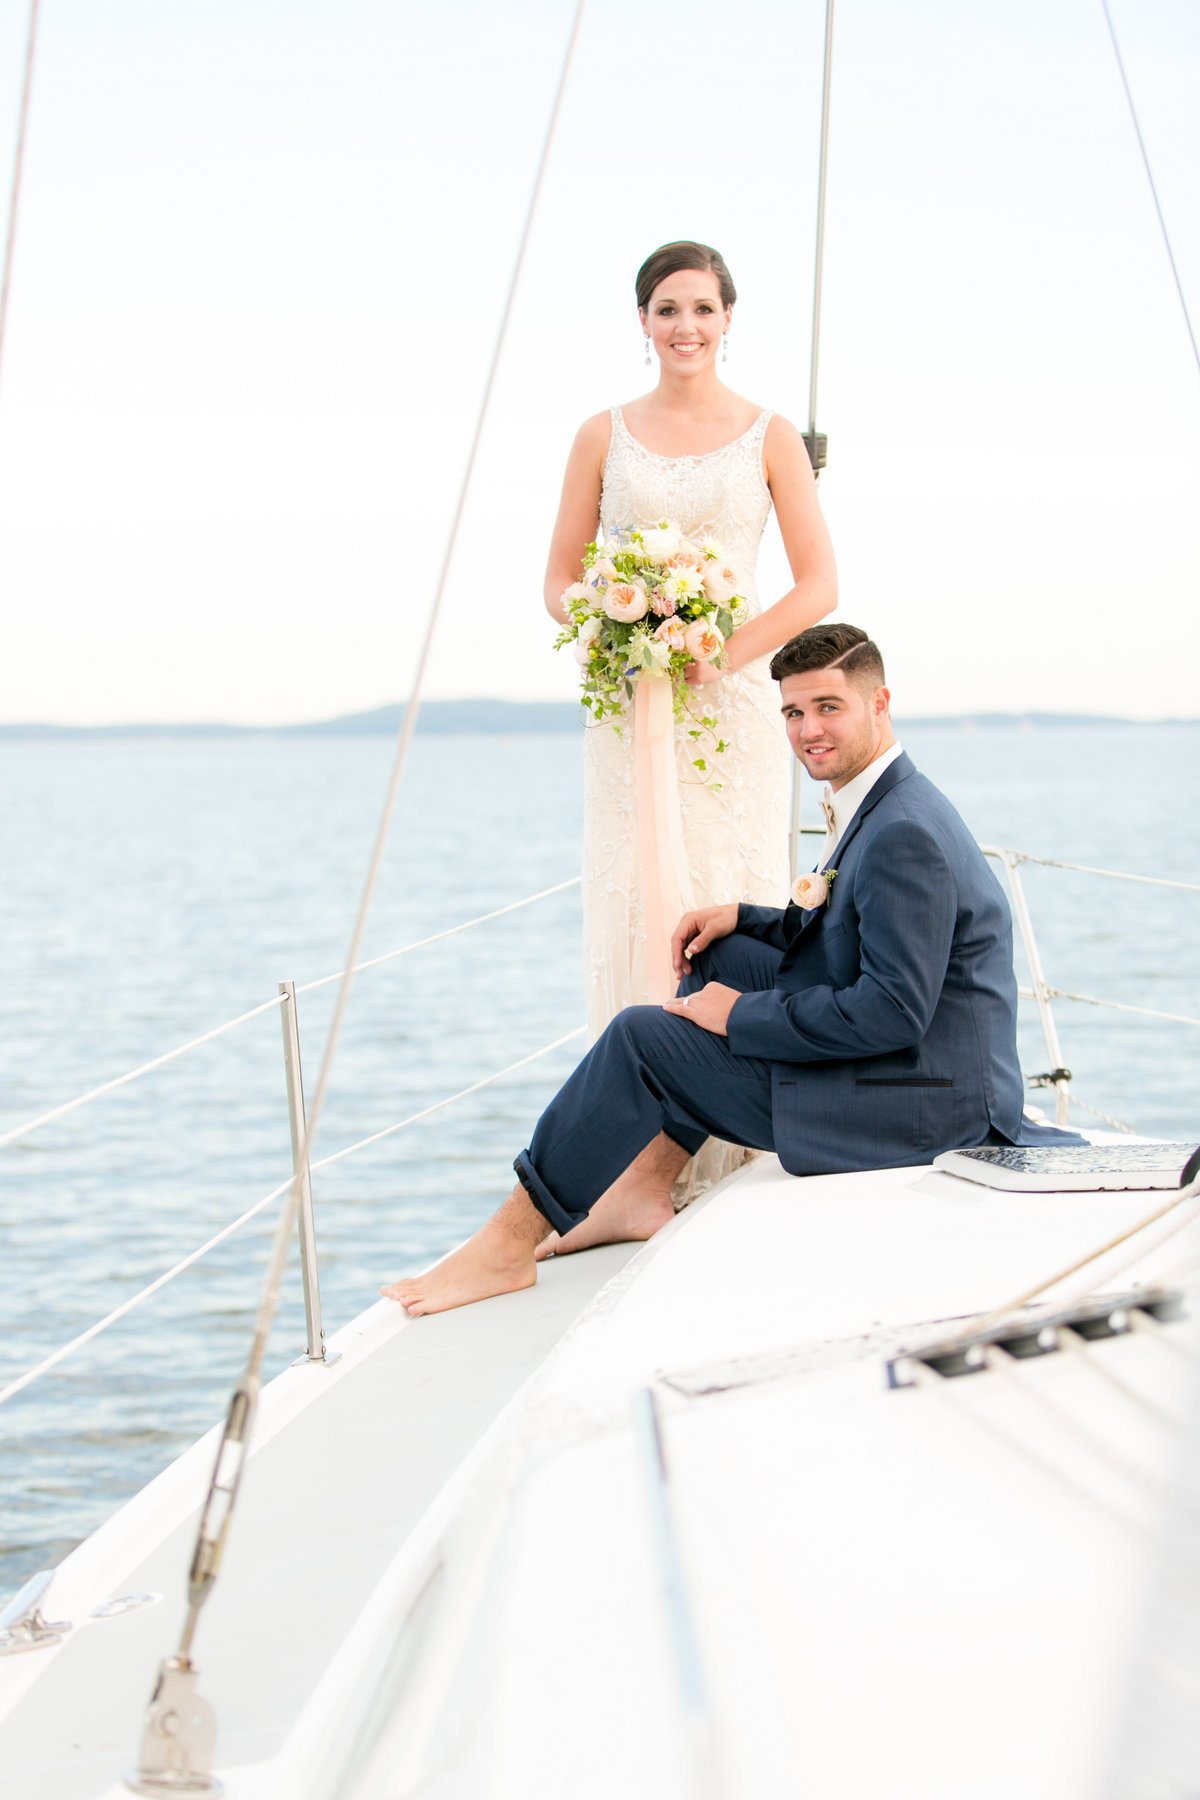 Wedding-on-a-boat-photos